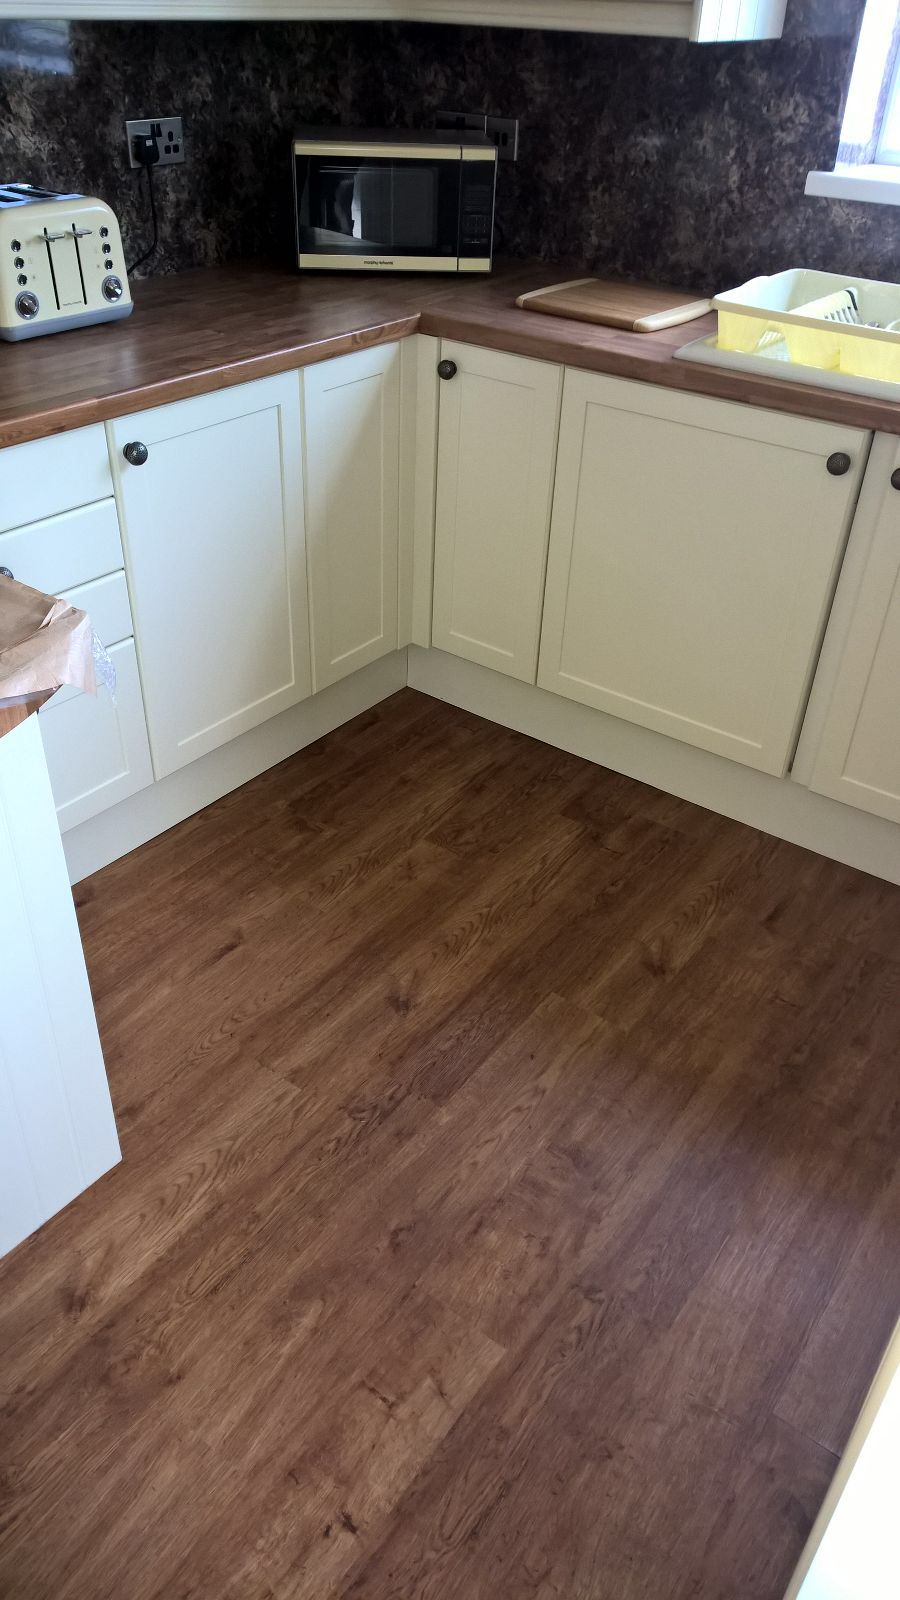 Polyflor camaro lvt vinyl tiles wood plank design flooring fitted polyflor camaro lvt vinyl tiles wood plank design flooring fitted throughout house fitted by paul hood dailygadgetfo Gallery